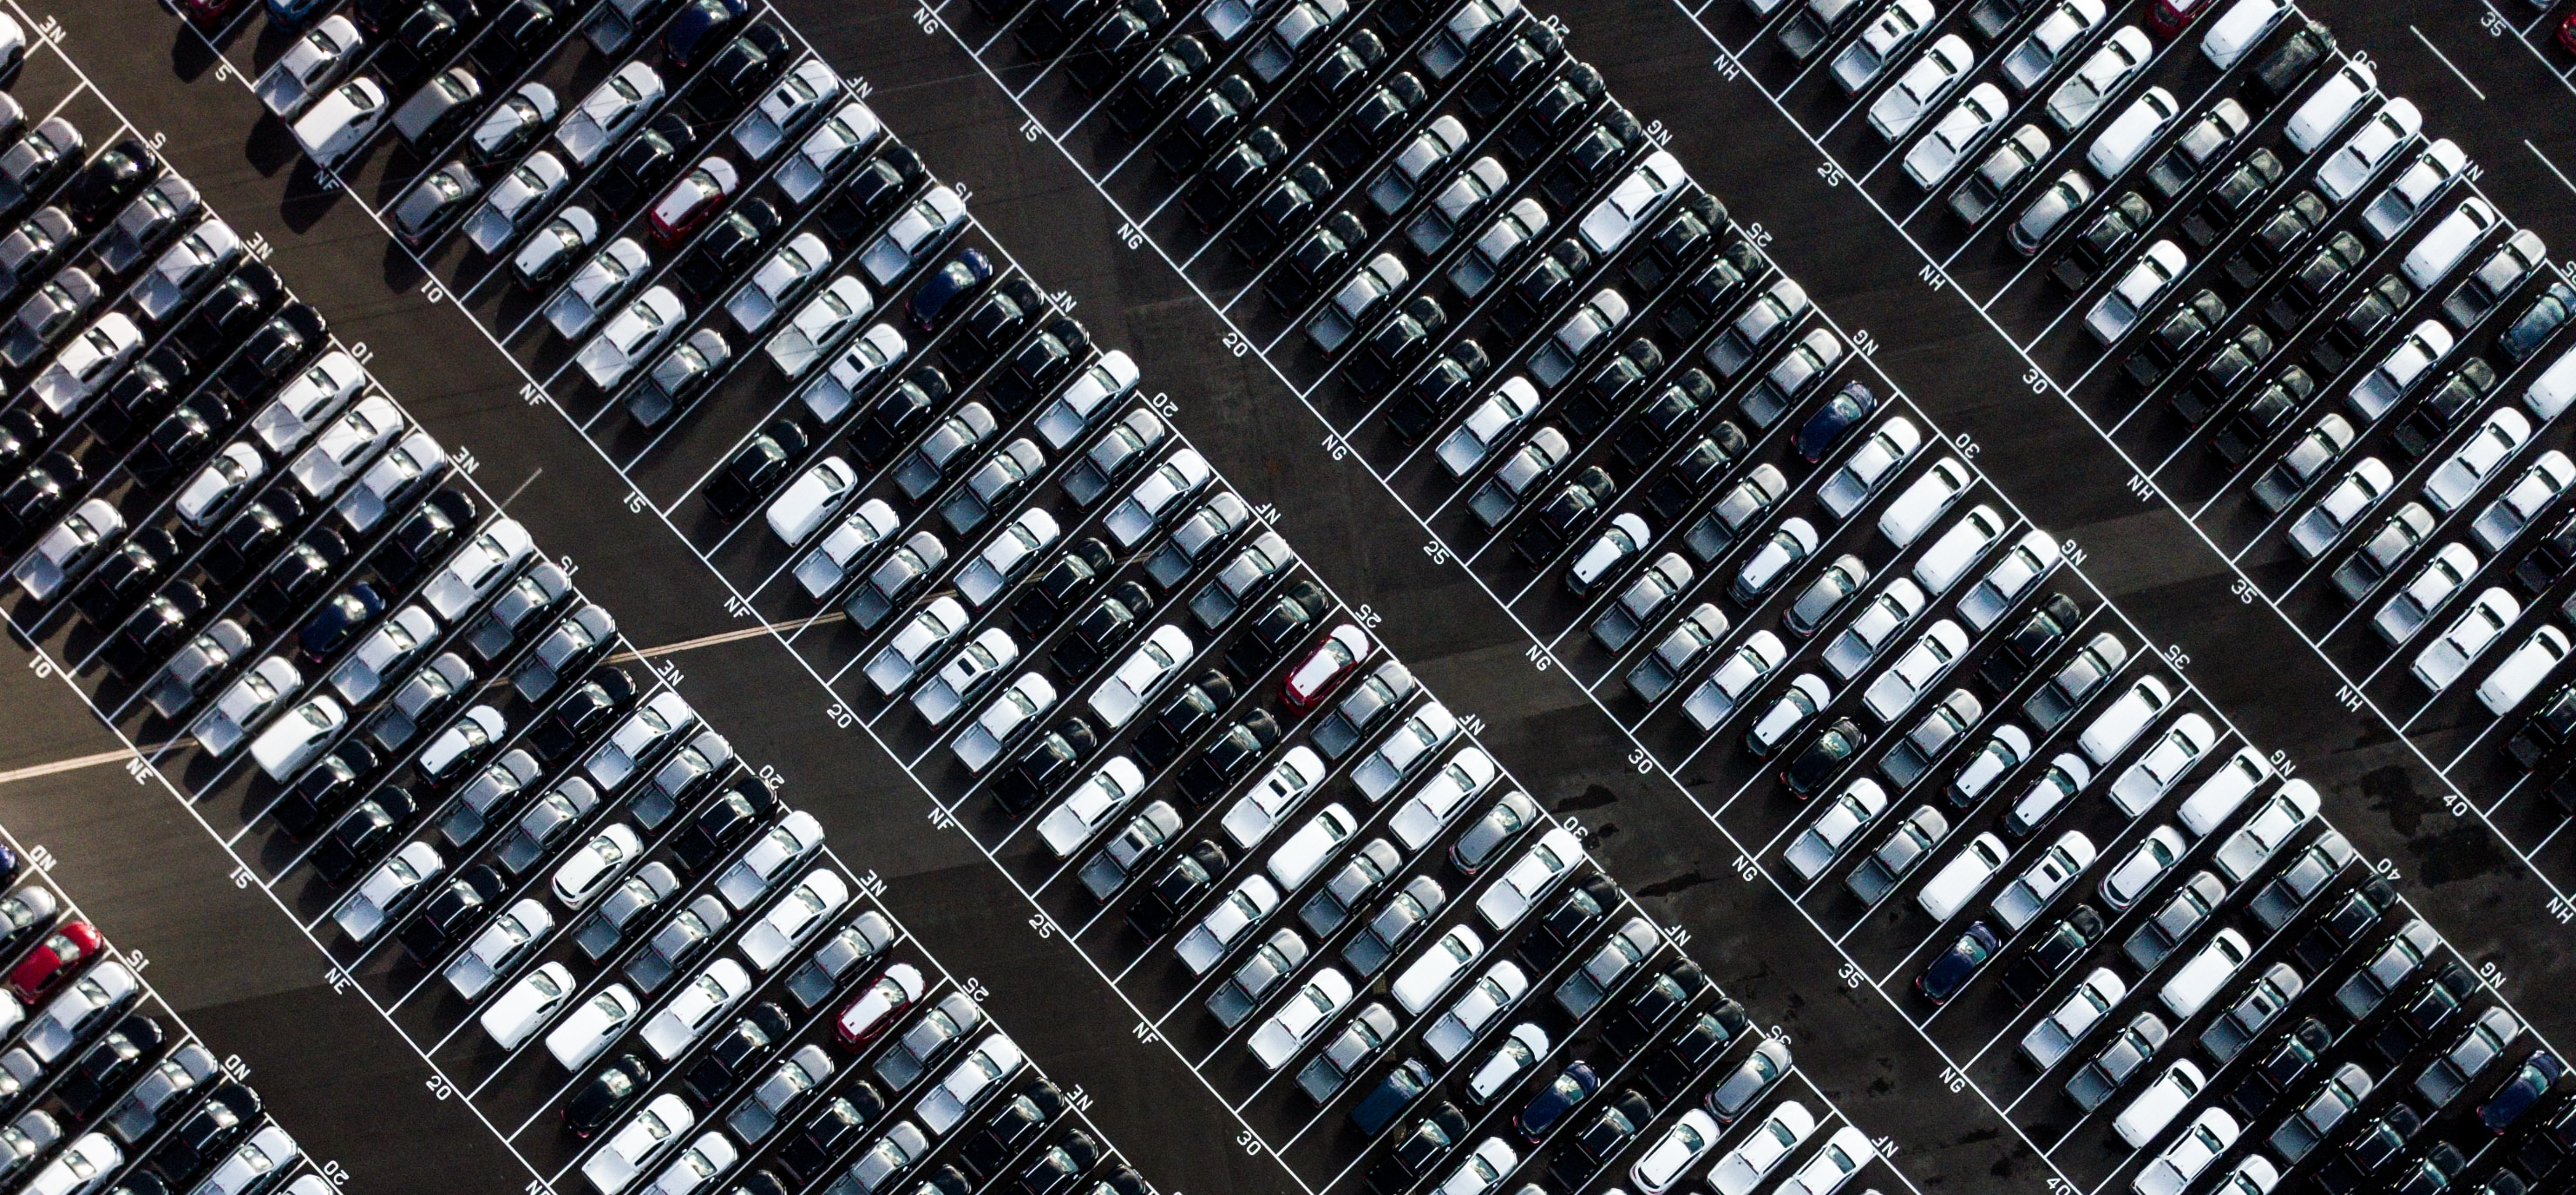 Cars spend 90 percent of time in the parking lot_ryan-searle.jpg